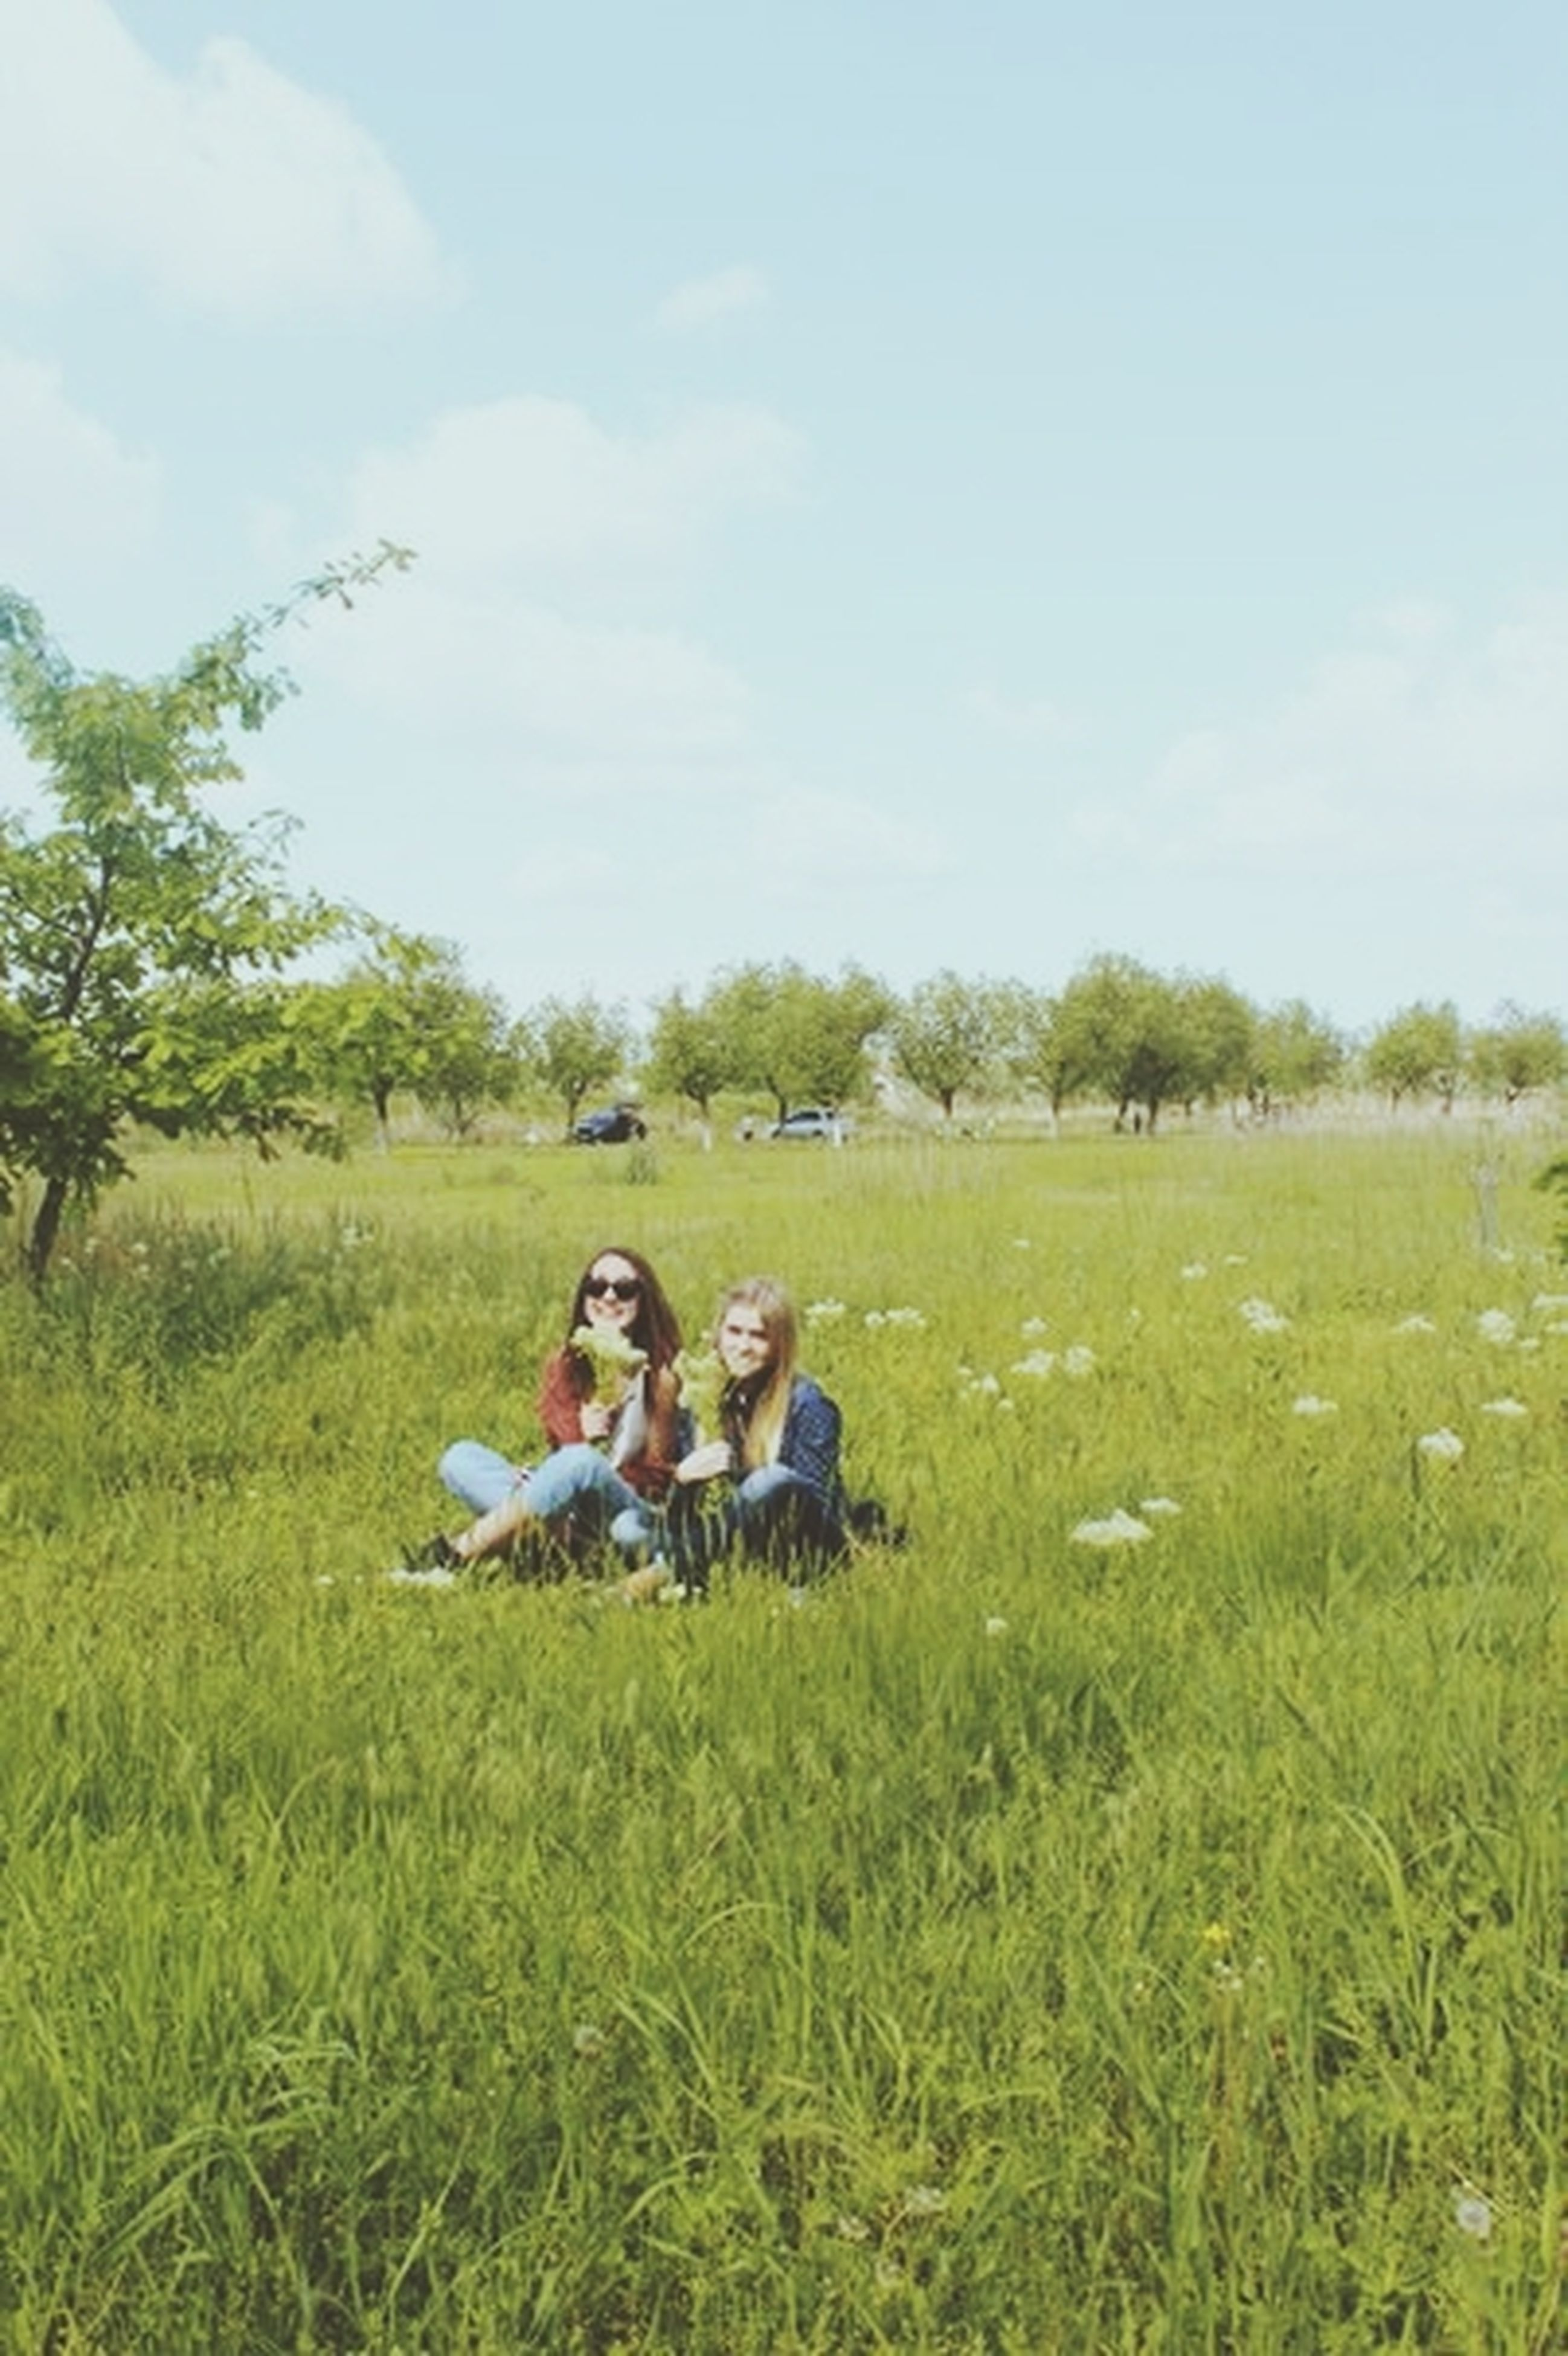 grass, lifestyles, leisure activity, sitting, field, full length, sky, casual clothing, men, relaxation, grassy, togetherness, green color, landscape, person, childhood, bonding